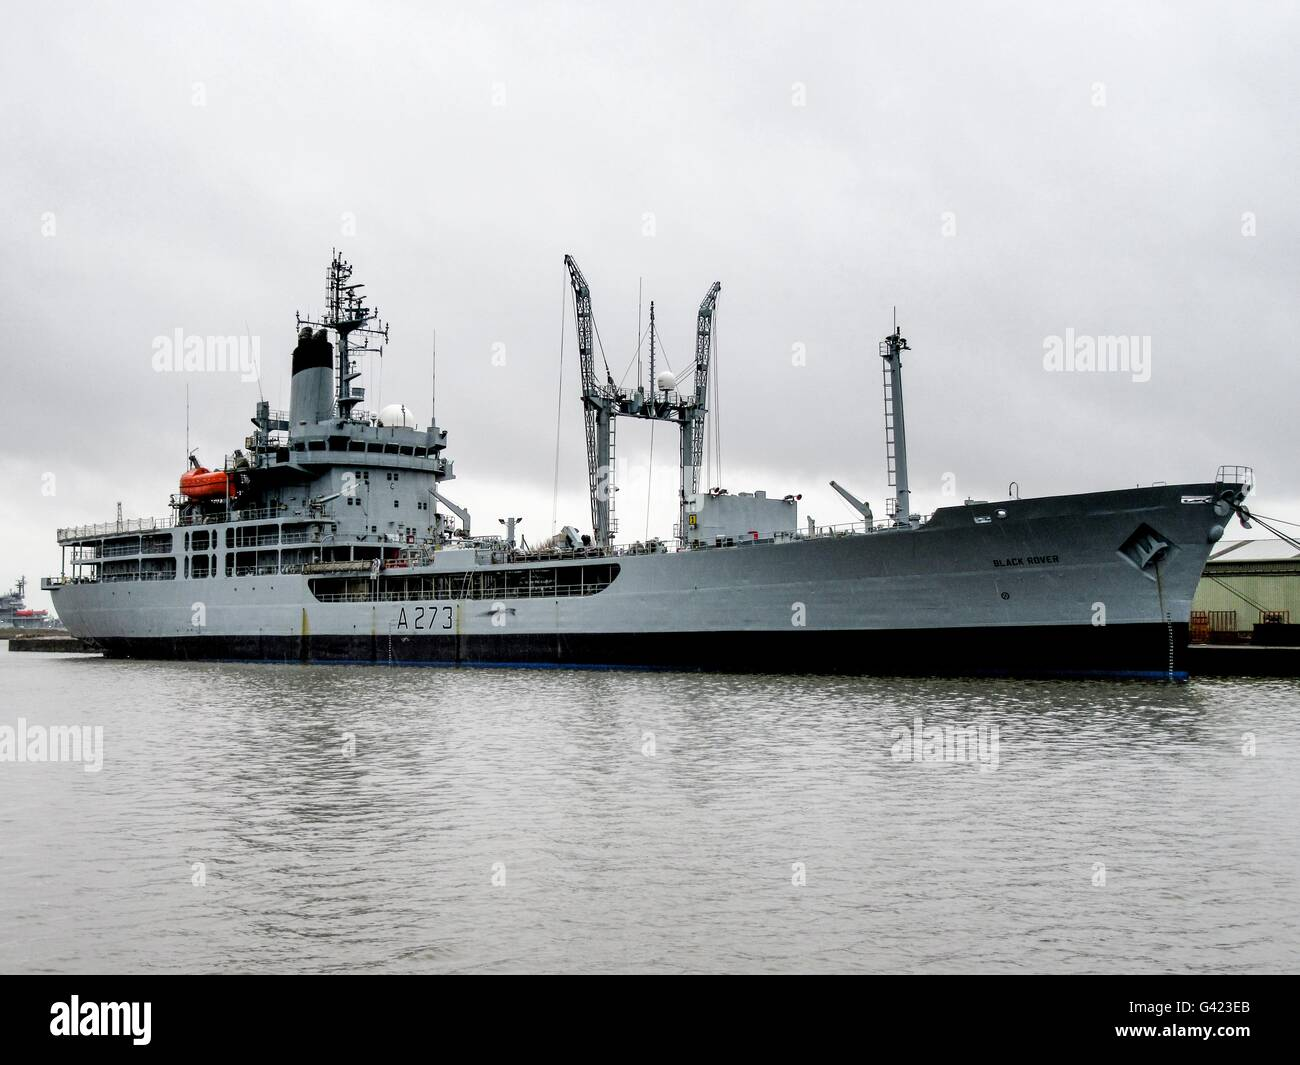 RFA Gold Rover, Fleet Replinishment Tanker, awaiting fate after decommisioning moored at Birkenhead - Stock Image